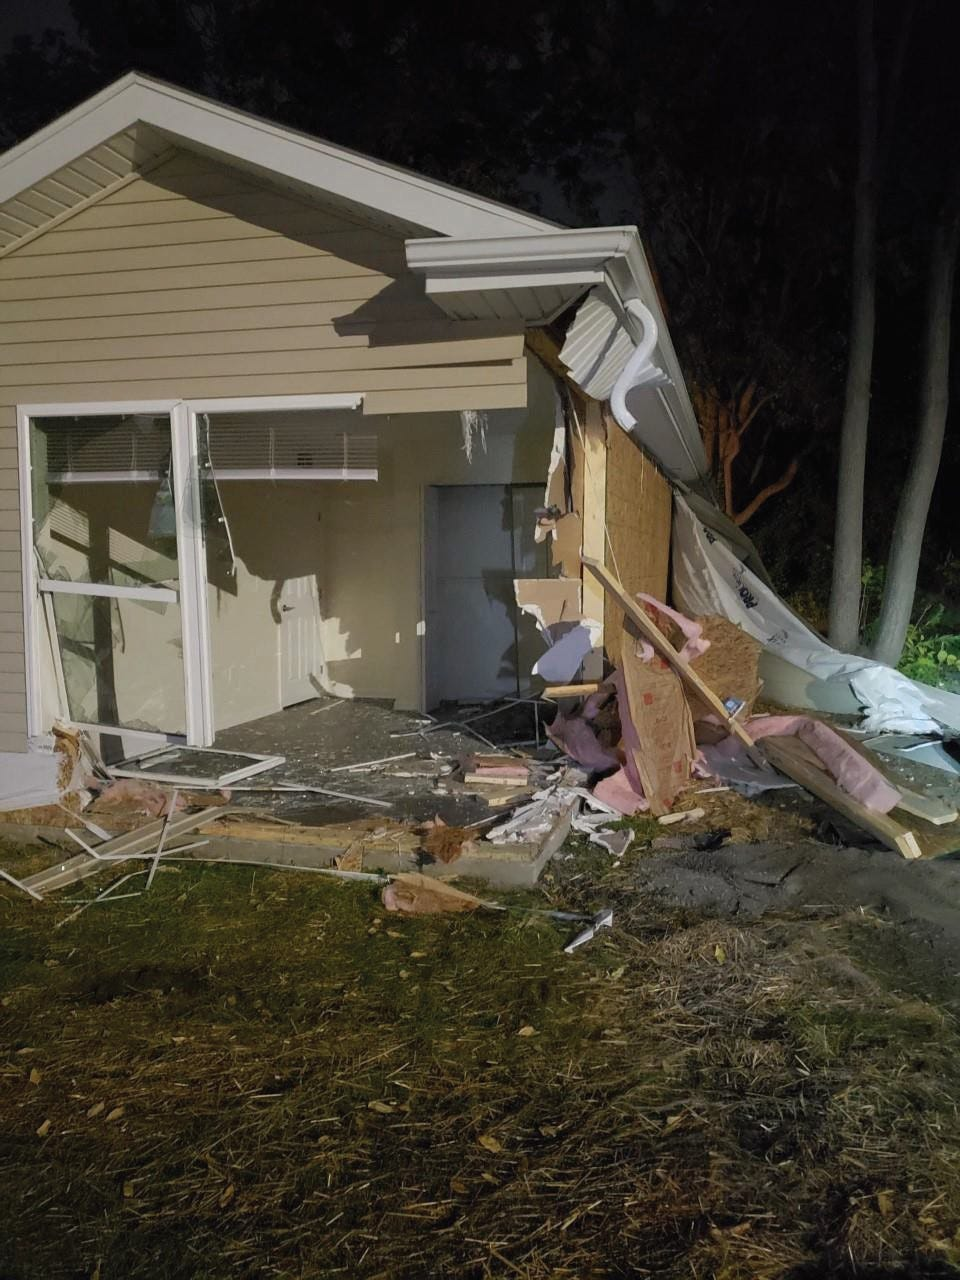 $1K reward for tips to find driver who plowed into Pontiac house